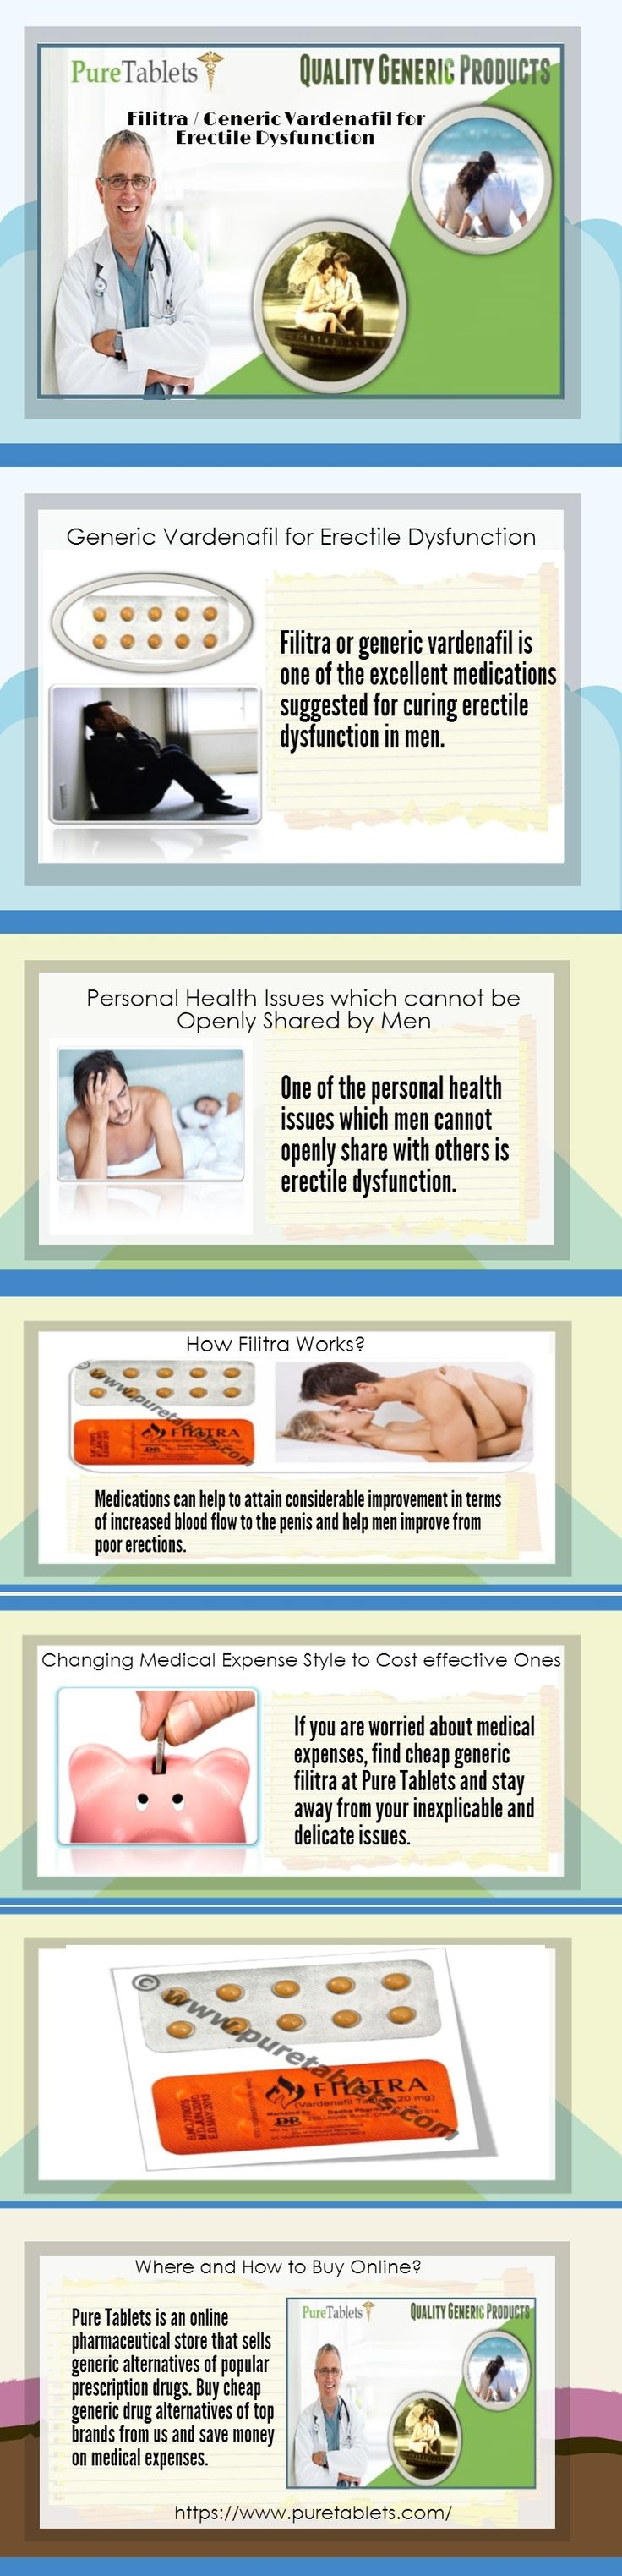 images about our infographics drug store infograph about personal health issues that cannot be ppenly shared by men out one